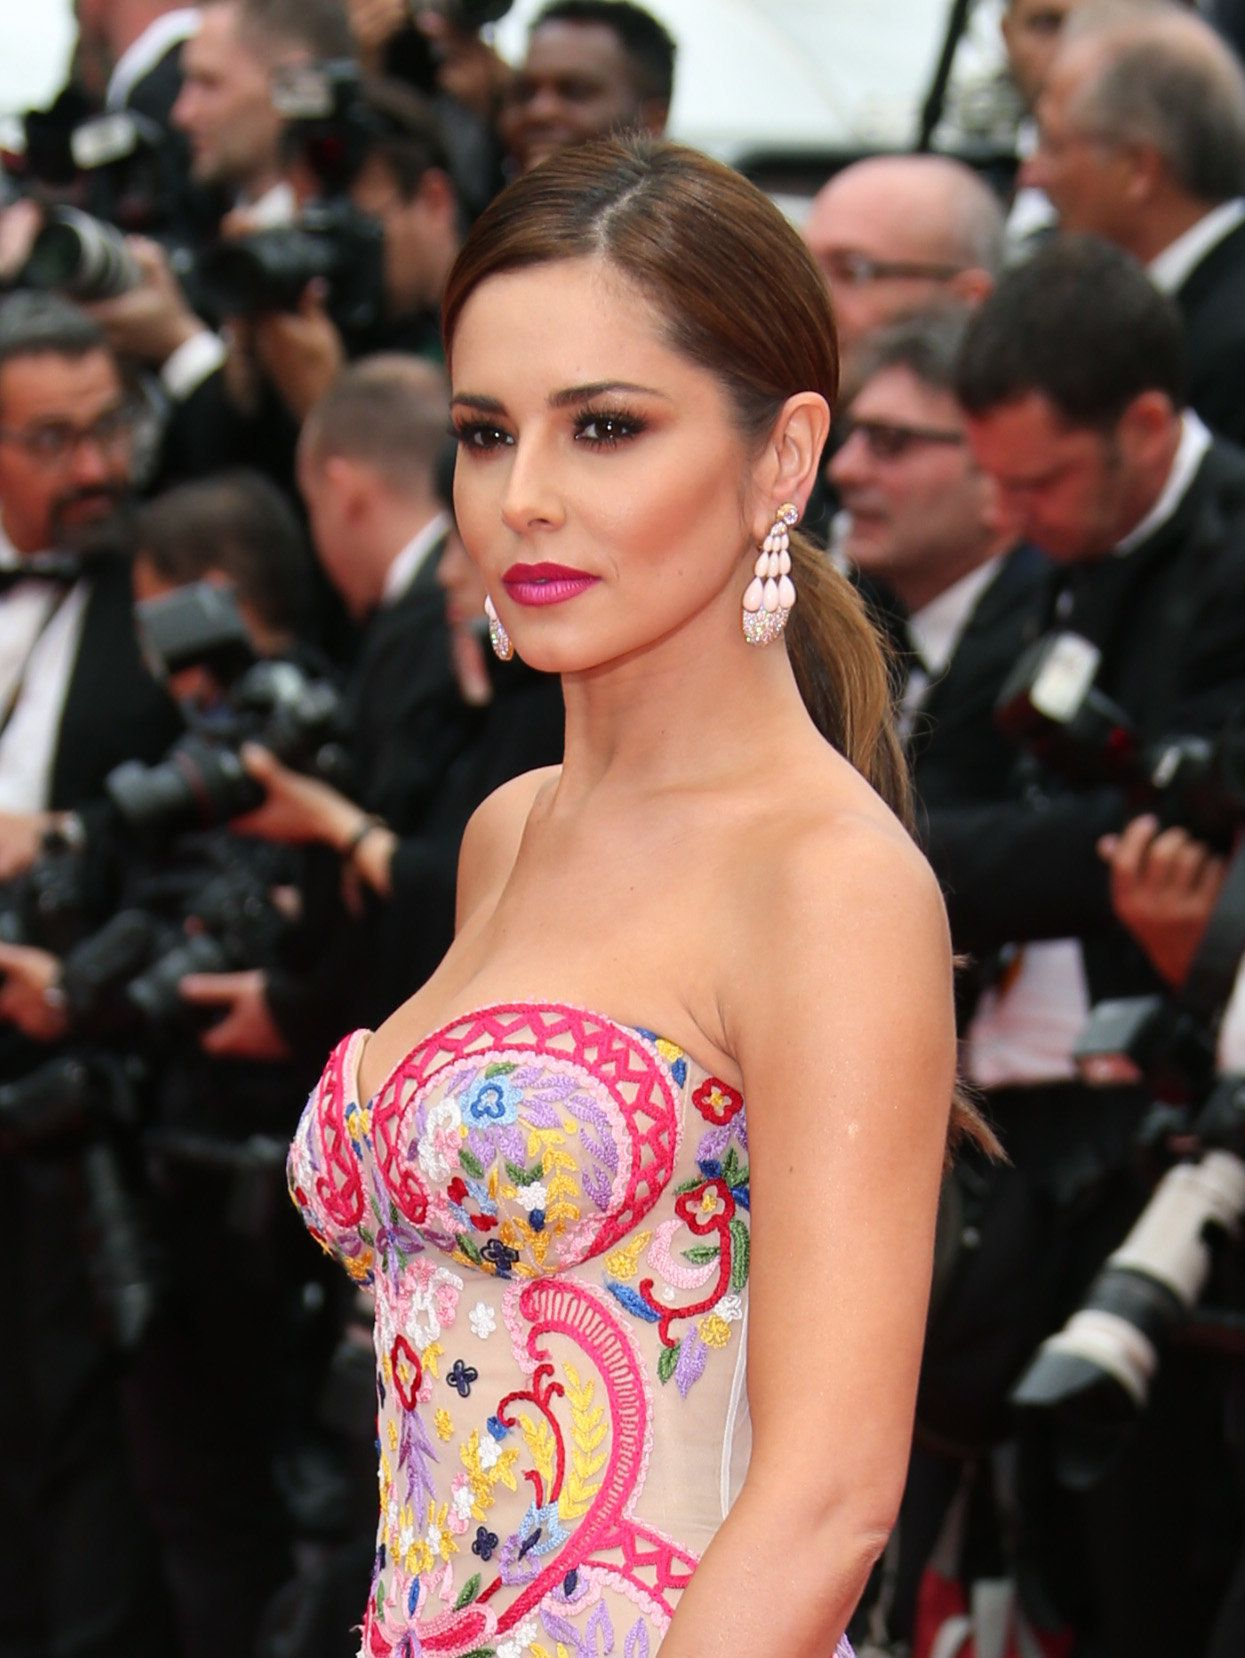 Cheryl Dismisses Reports New Single 'Love Made Me Do It' Is About Liam Payne